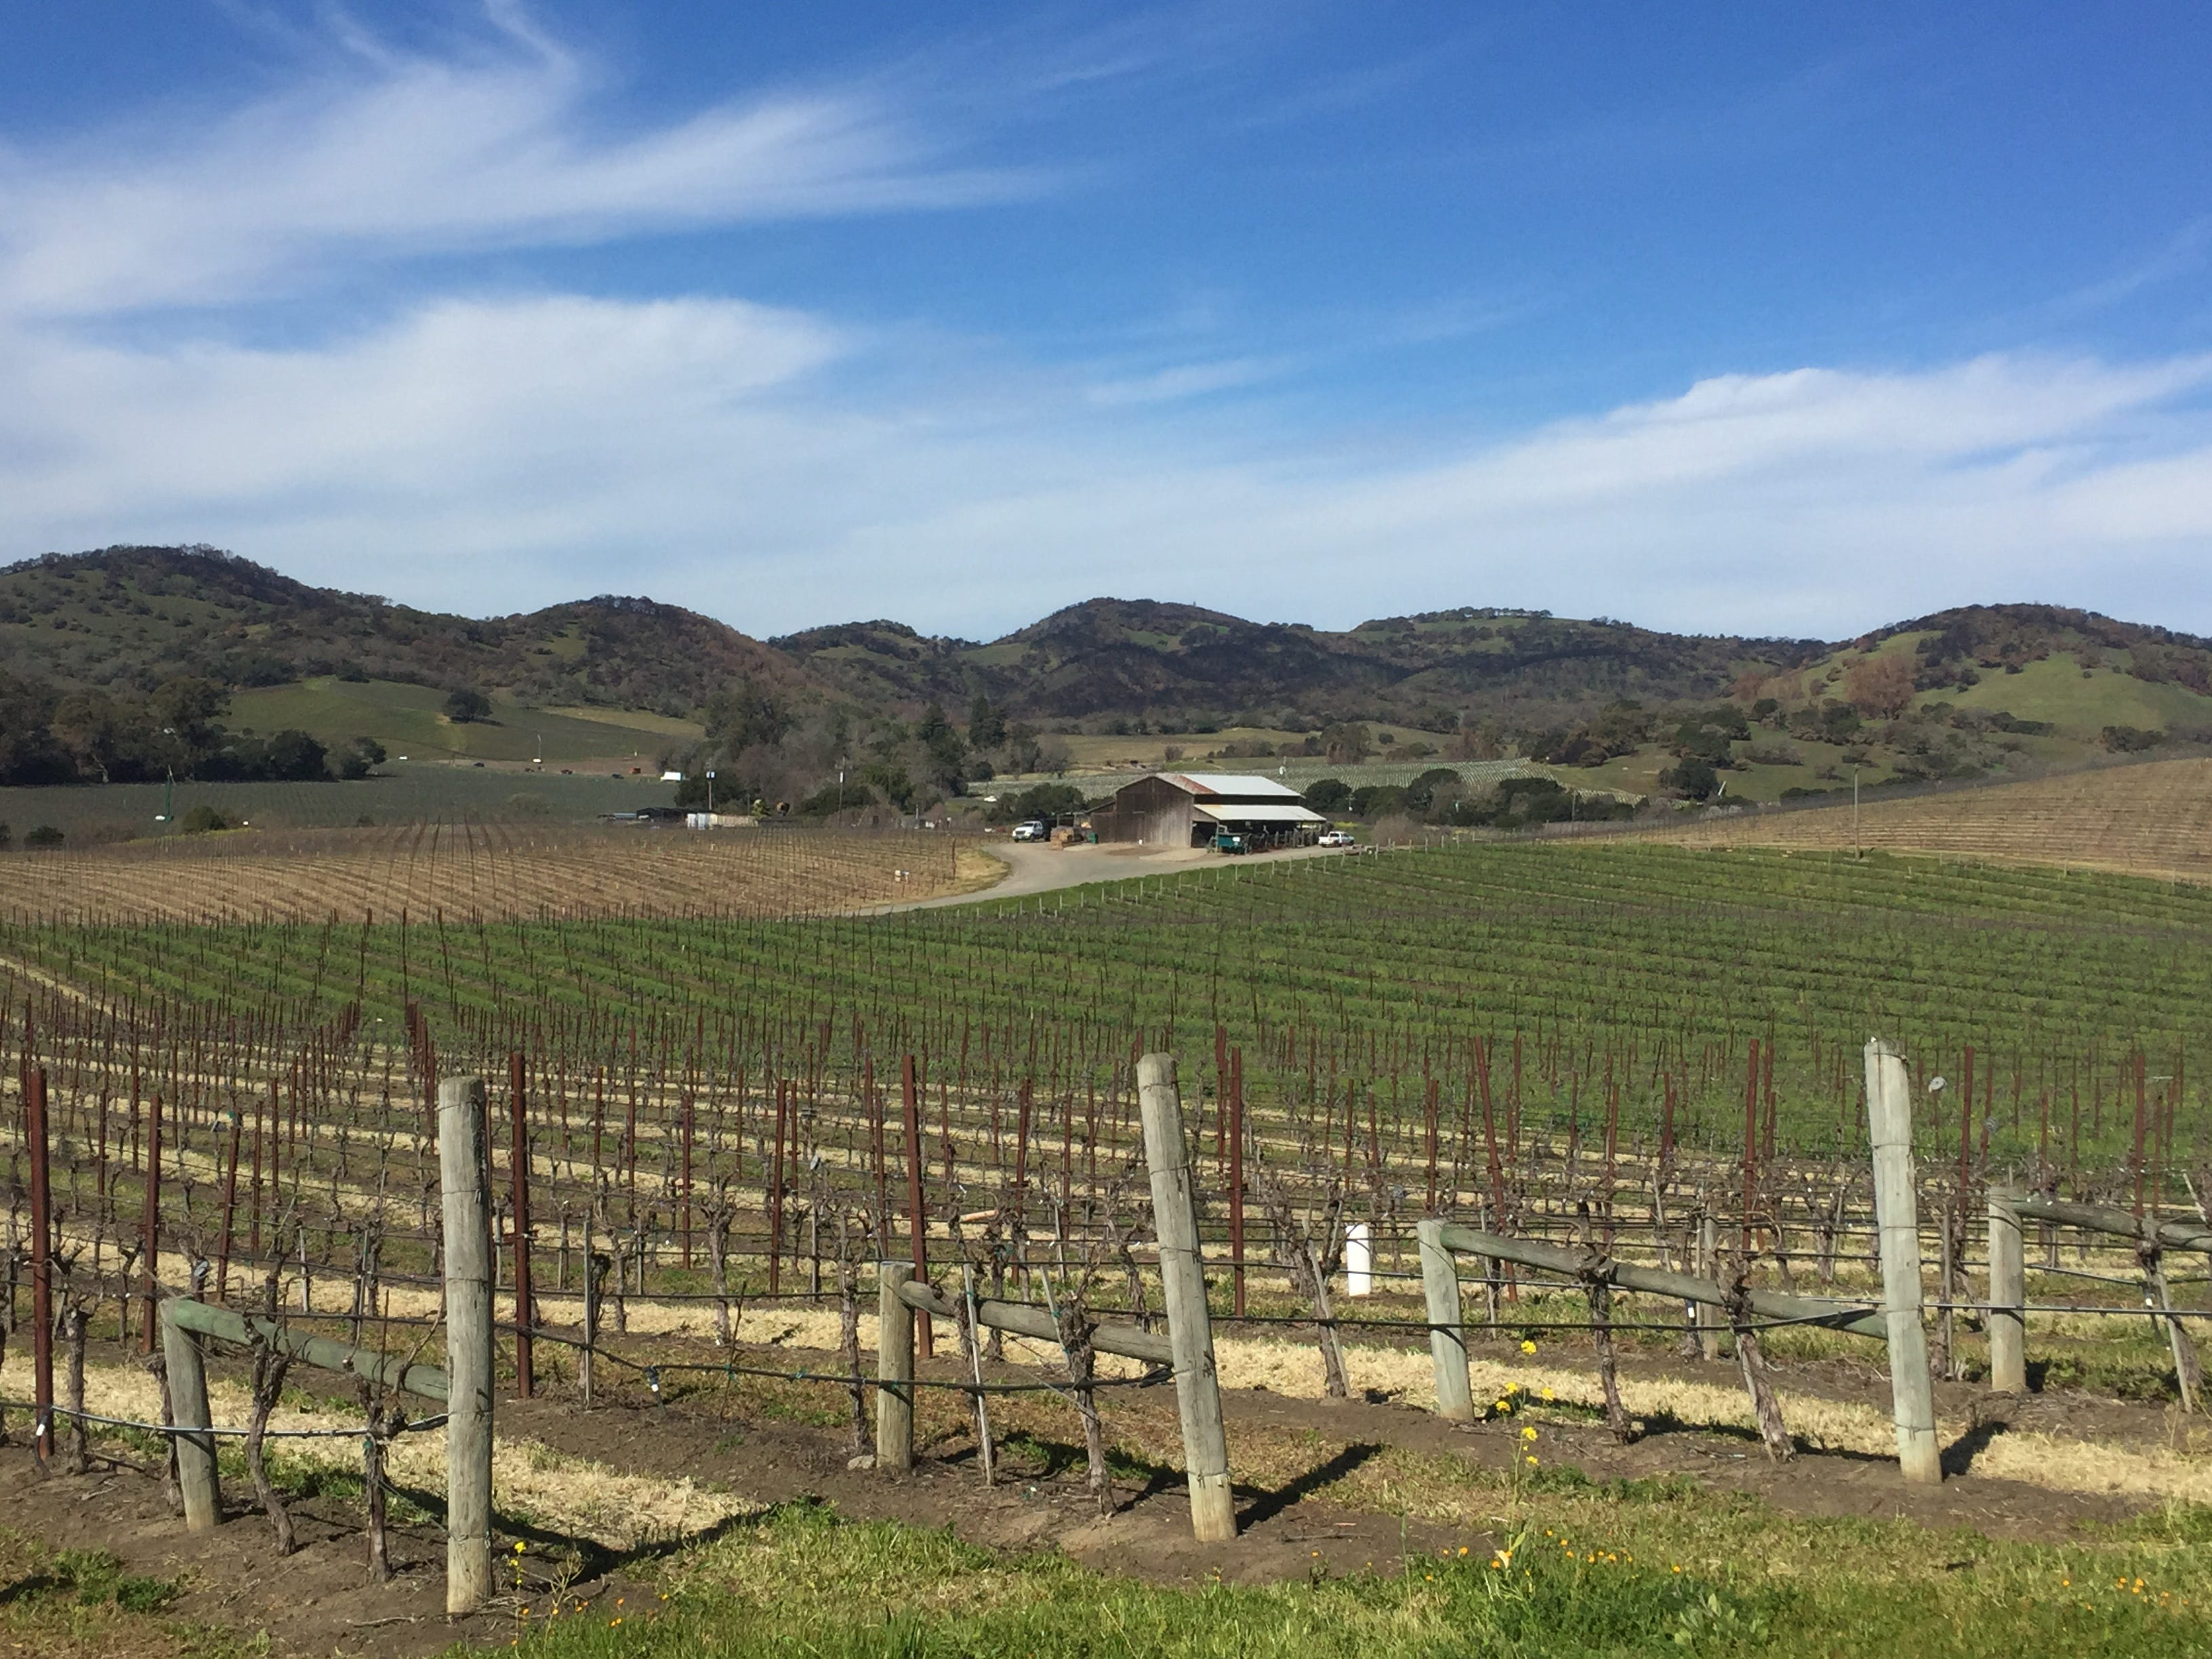 6 months after wildfires, California wine country is open